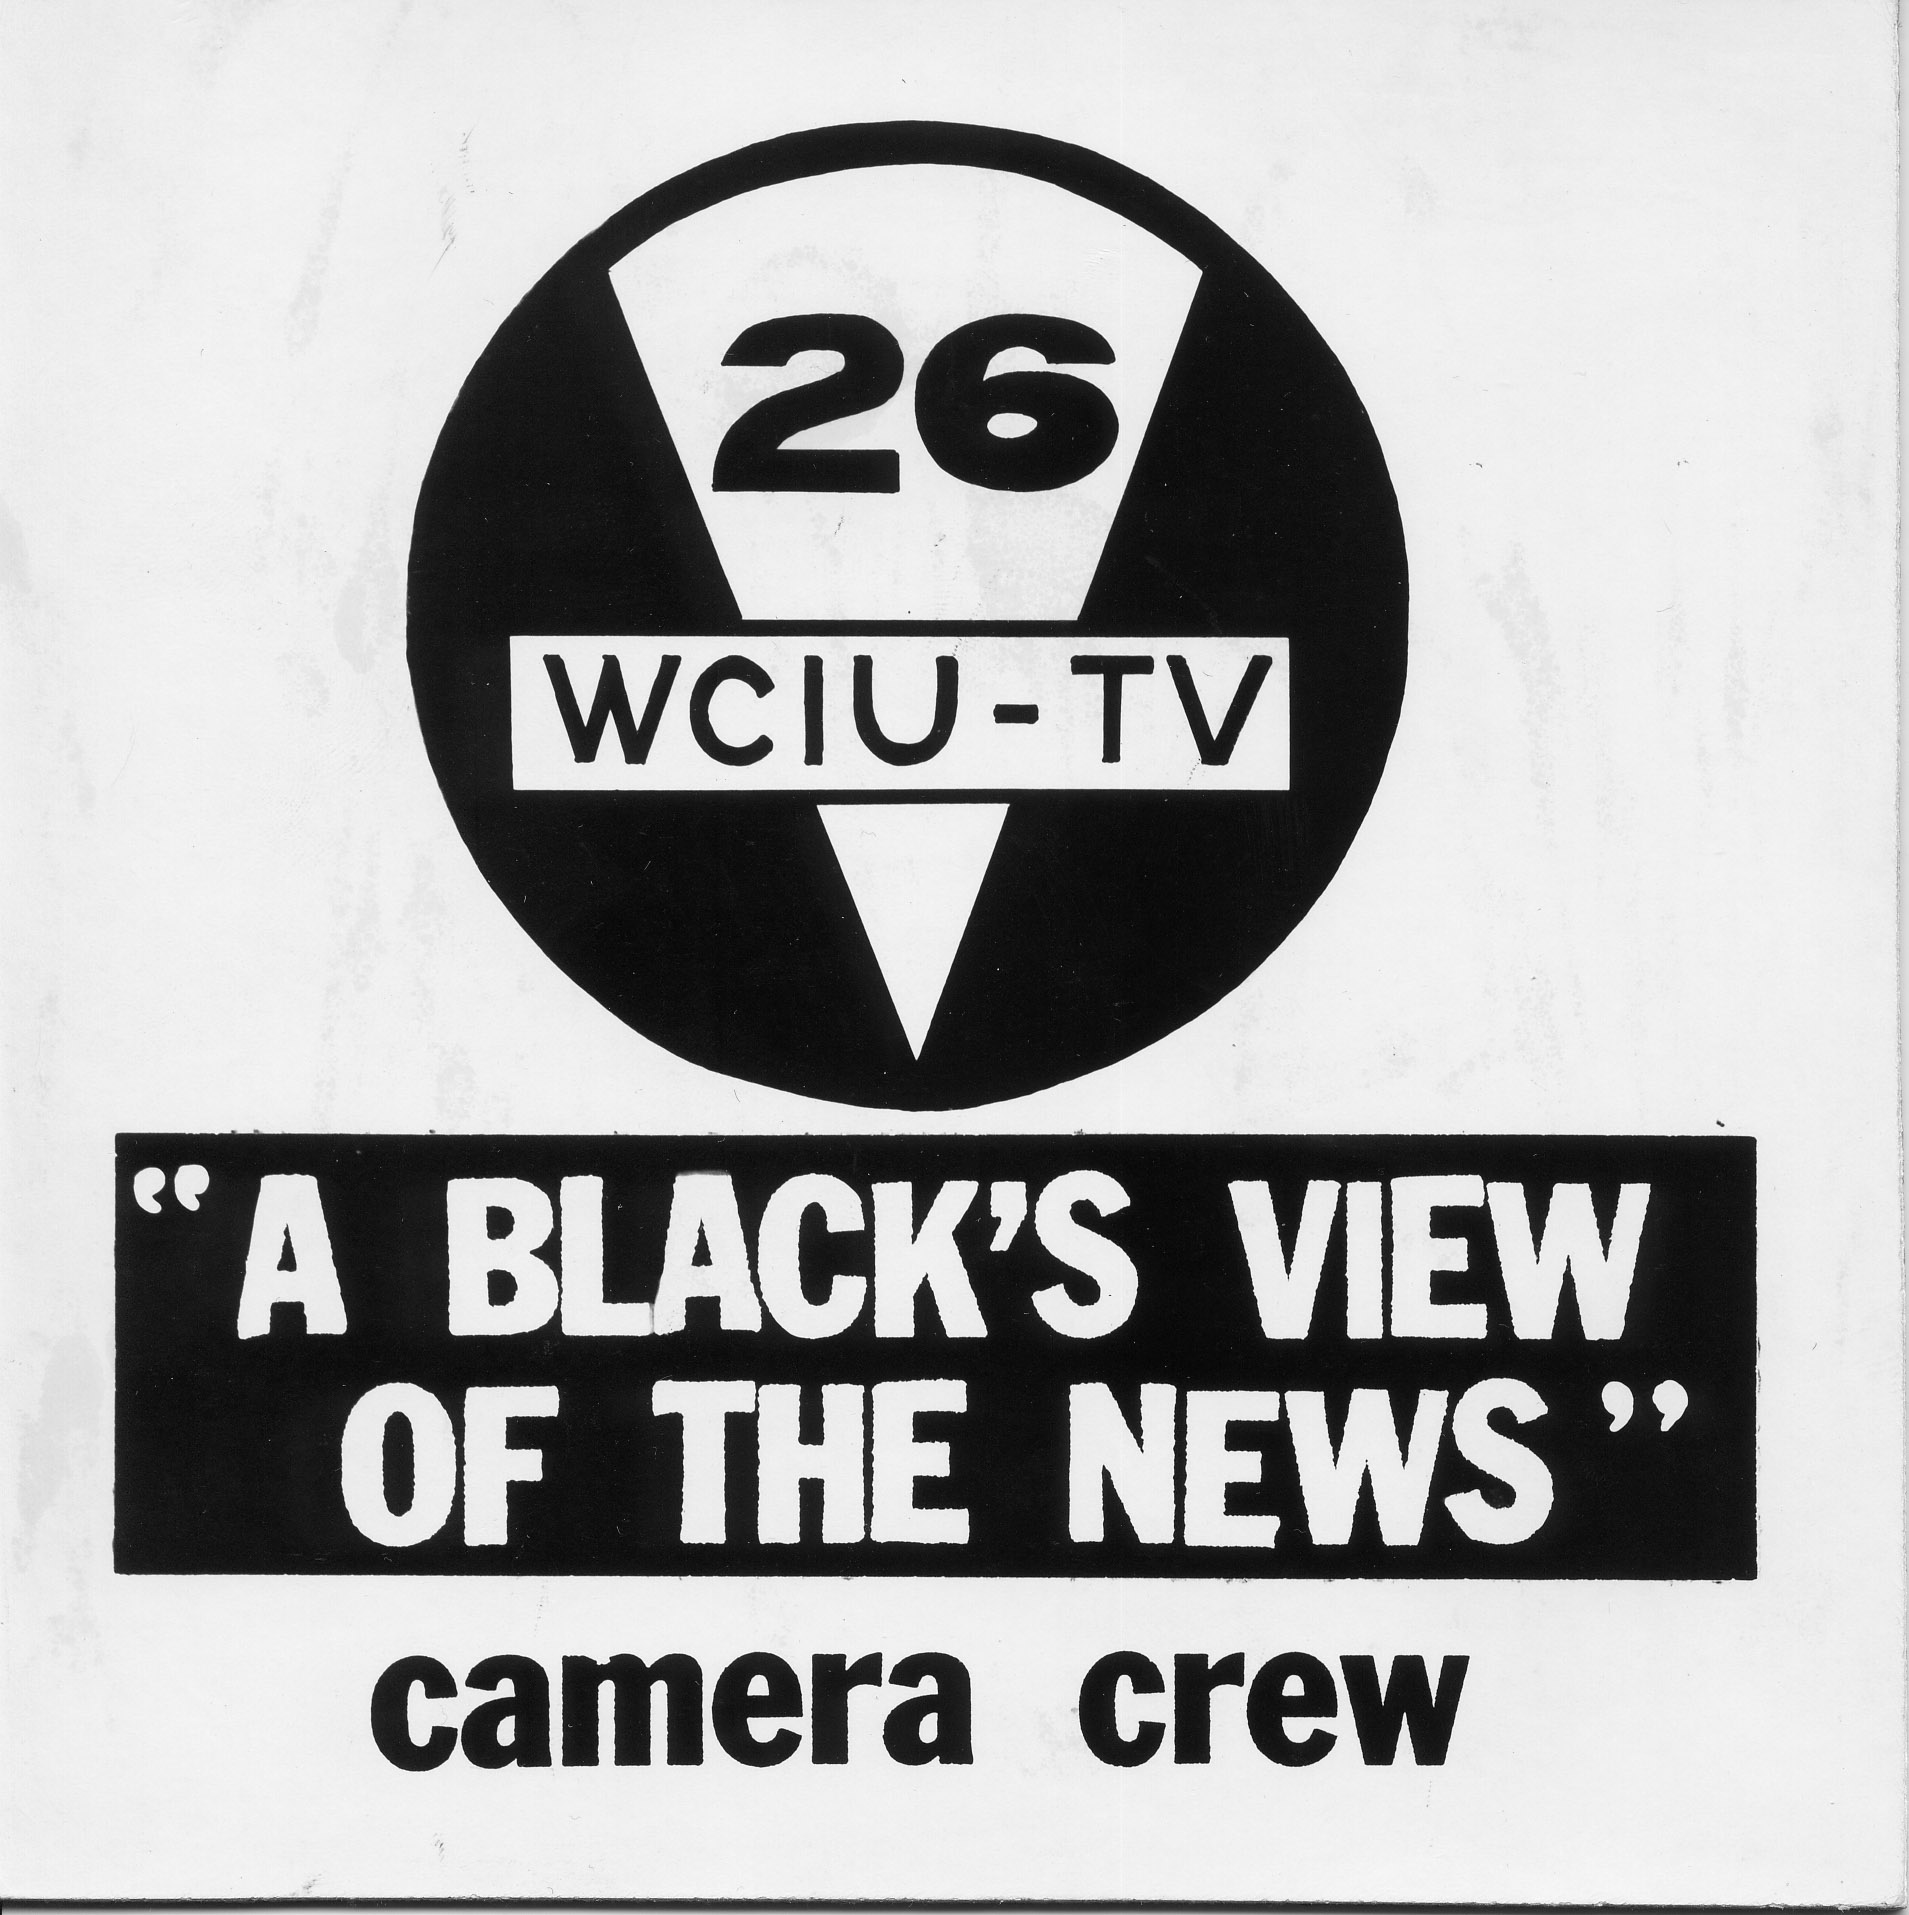 Black's View of the News press pass